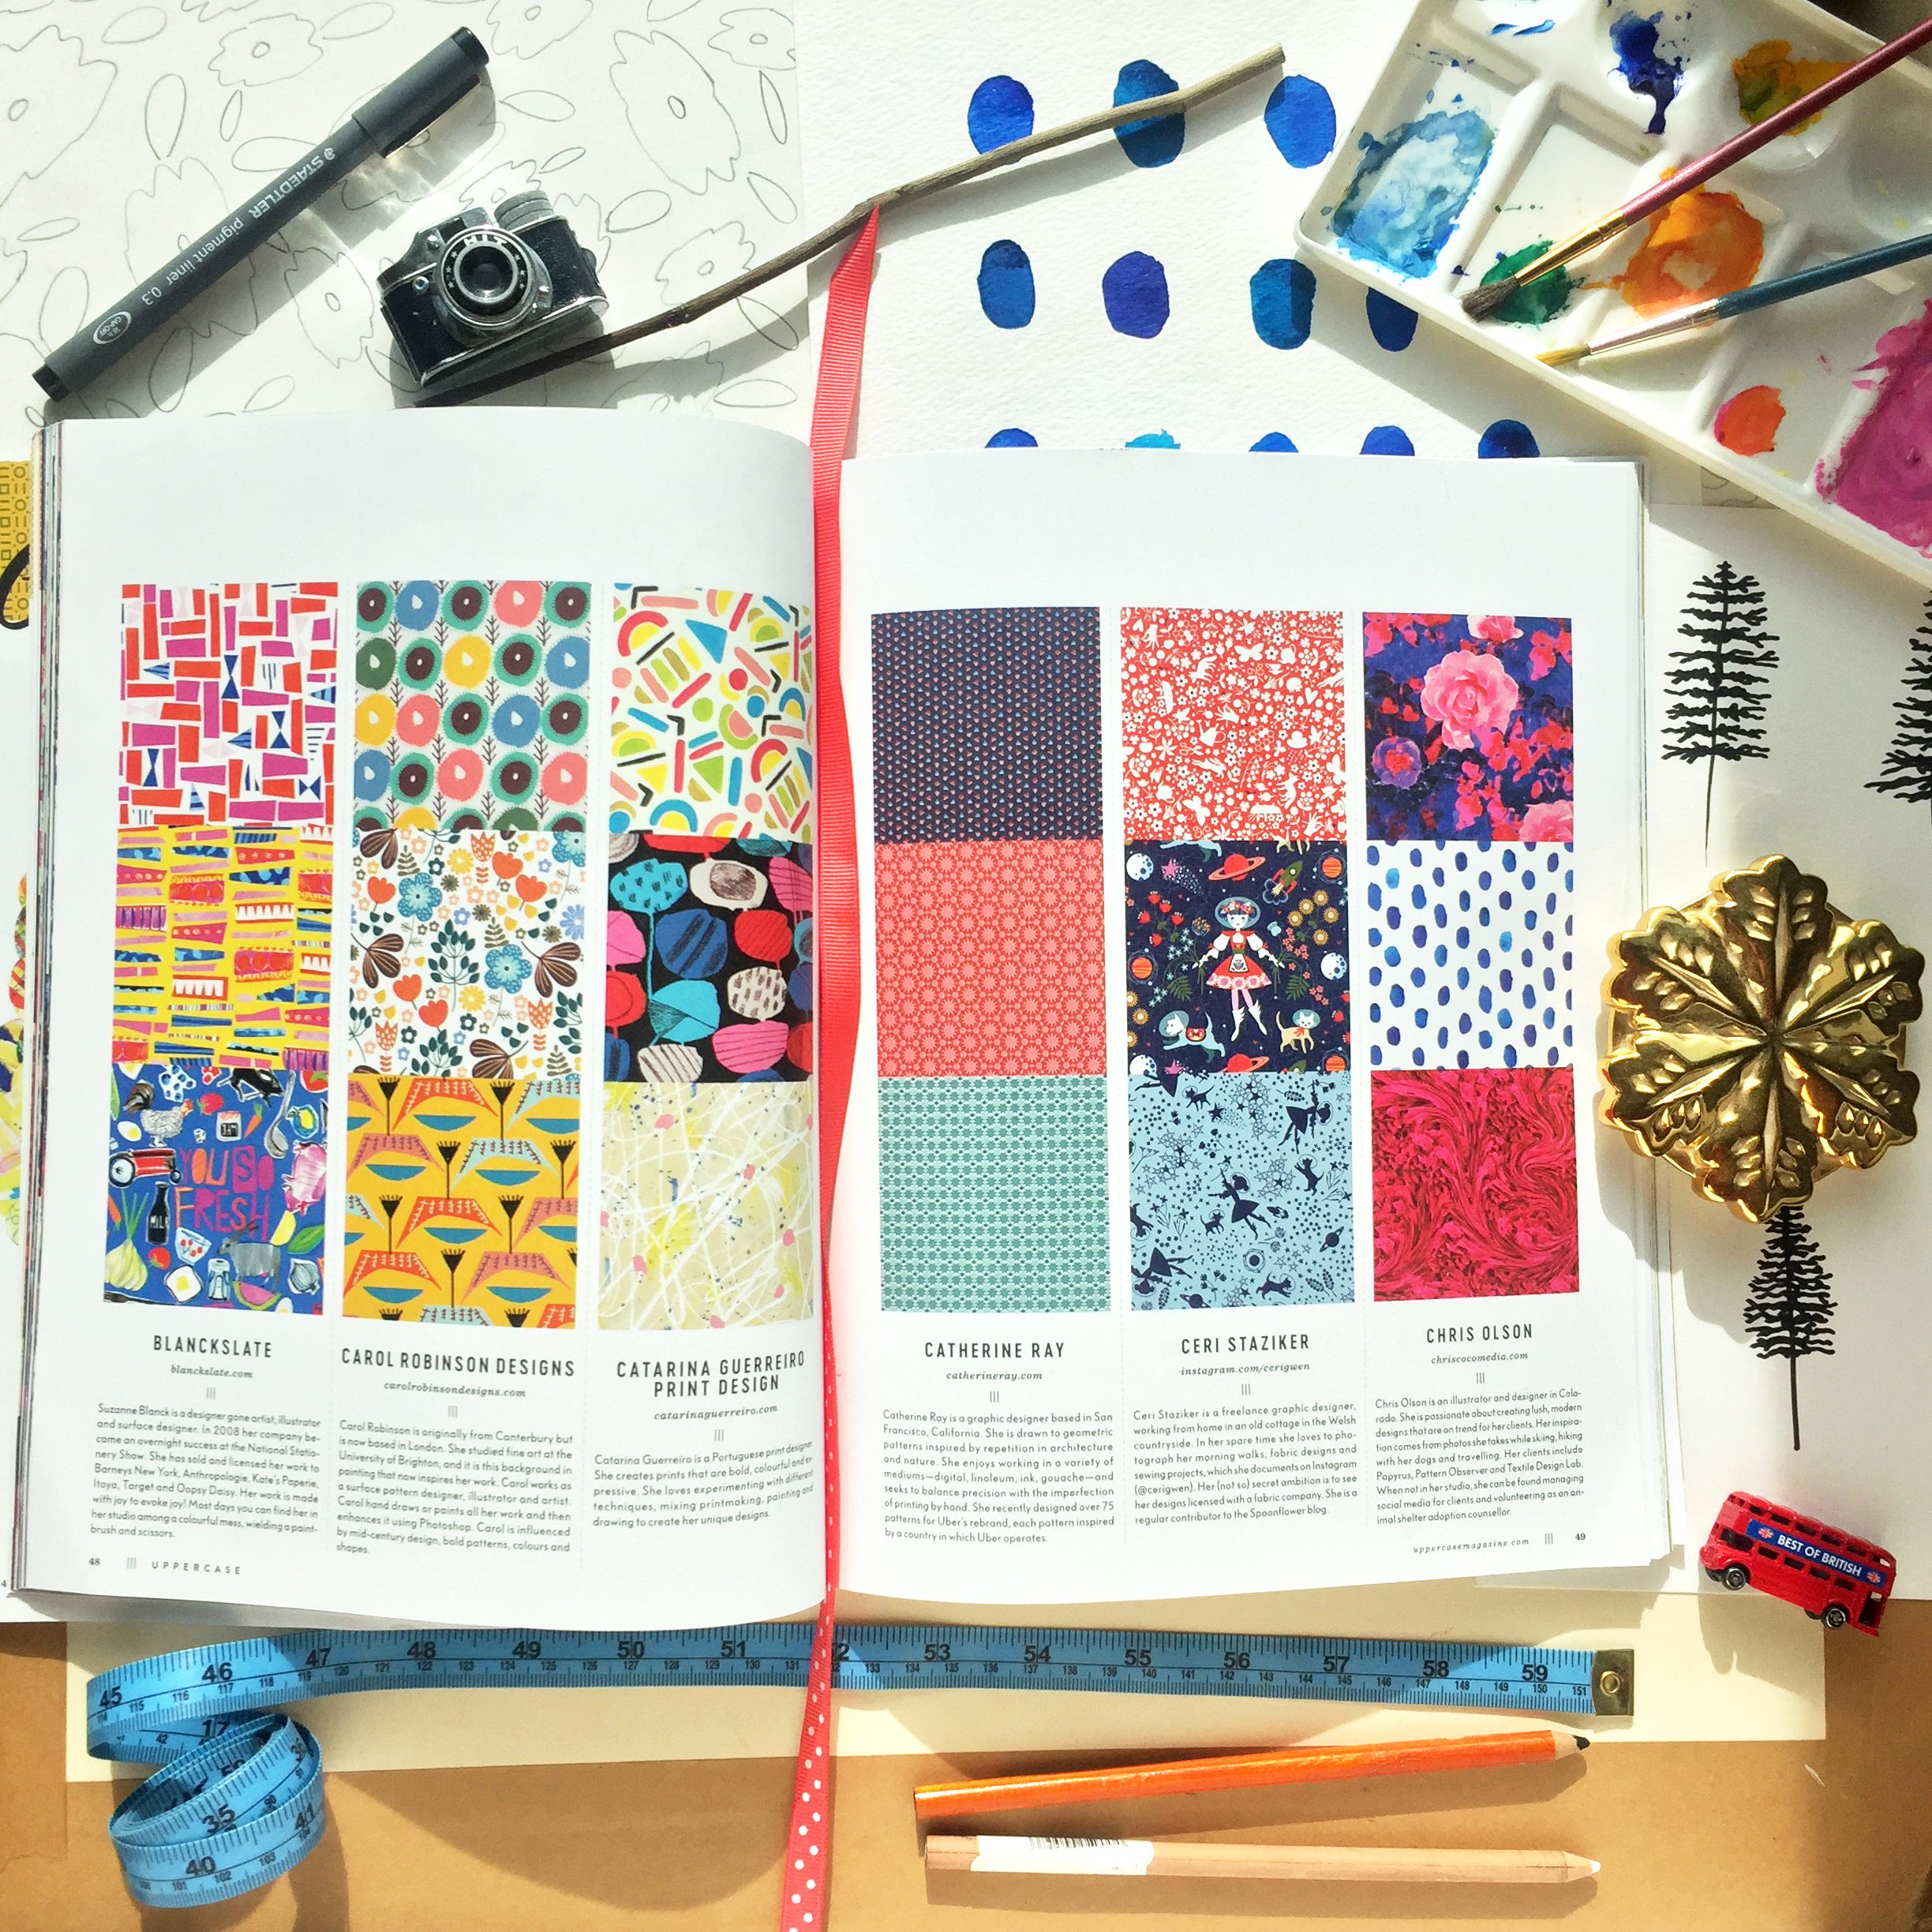 UPPERCASE Magazine's Surface Pattern Design Guide featuring Chris Olson